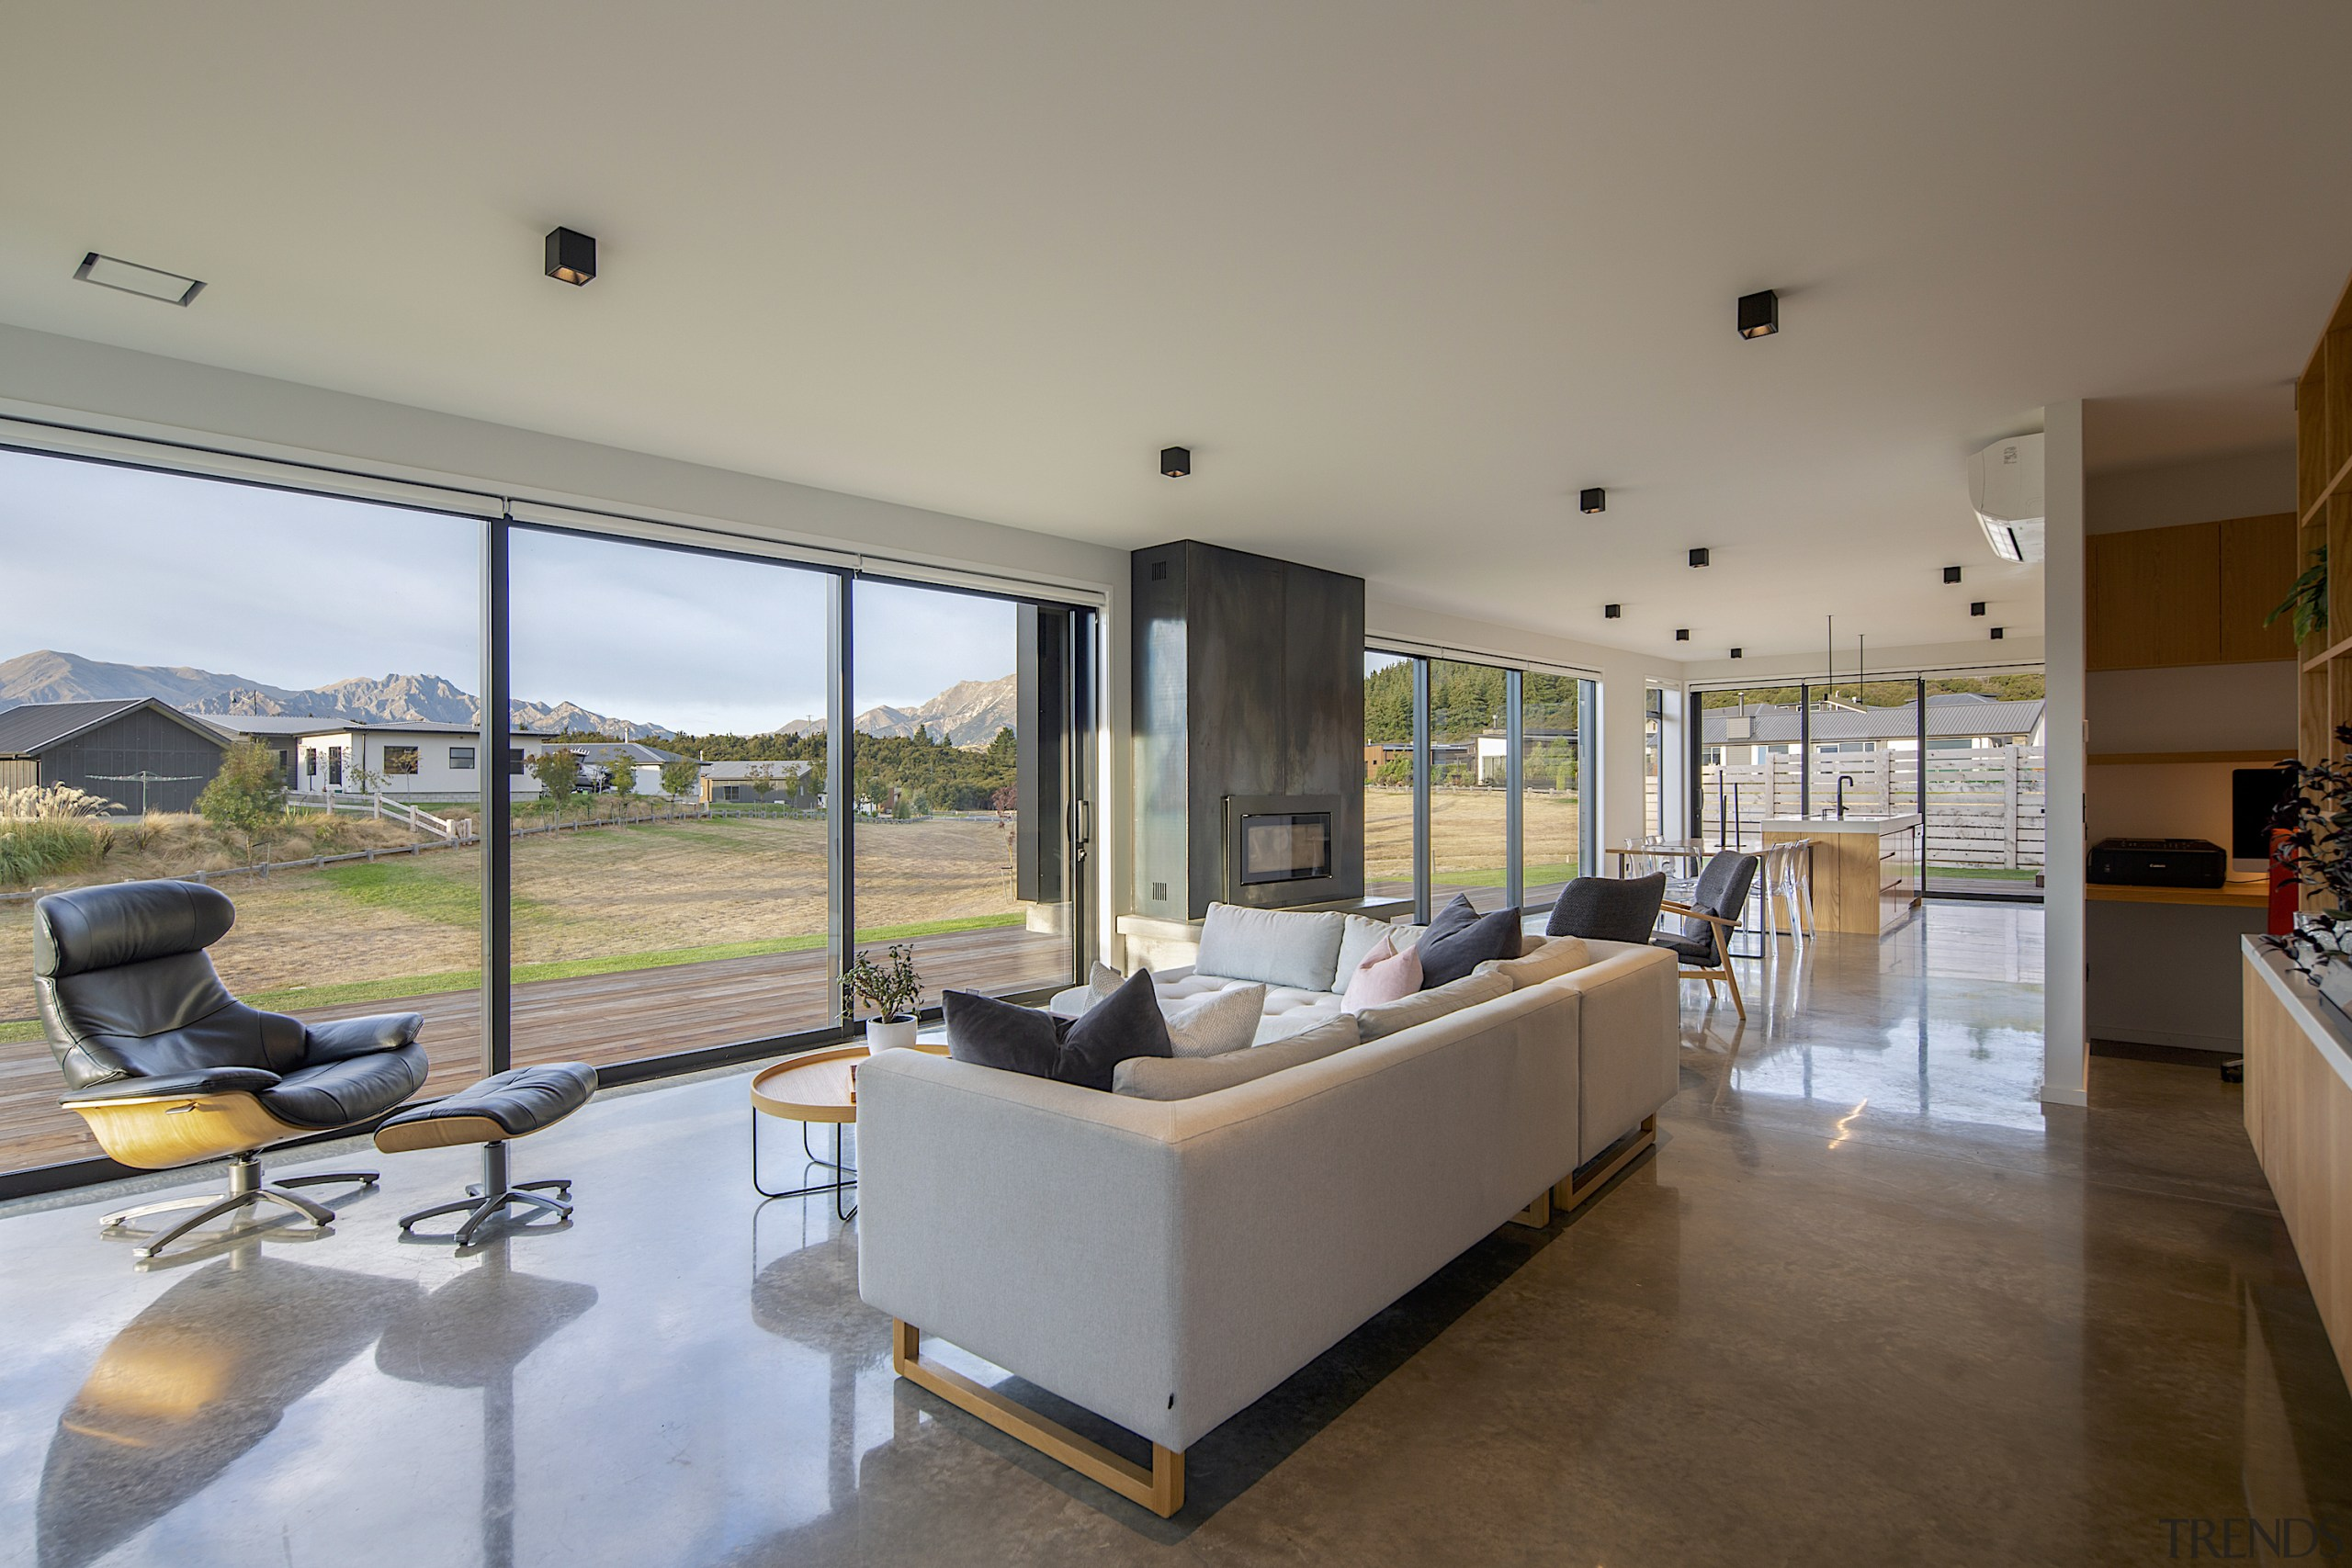 For this home, high windows and doors and gray